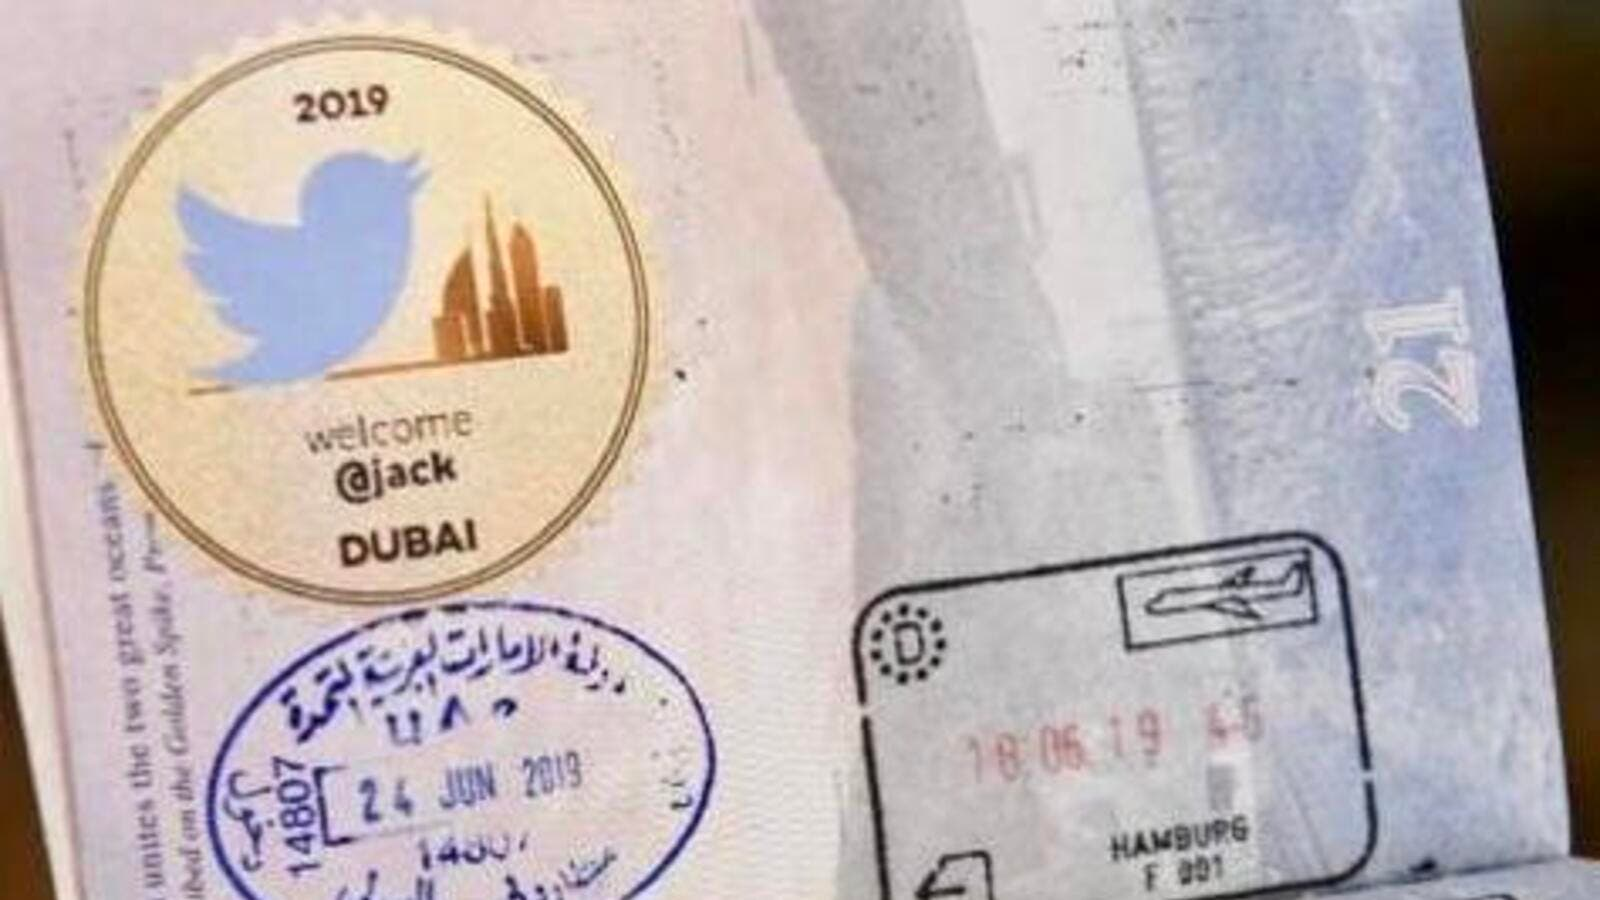 Jack tweeted a photo of the entry stamp he got upon arrival to Dubai which had a special welcome sticker with the iconic Twitter logo bird on it next to the Dubai skyline.